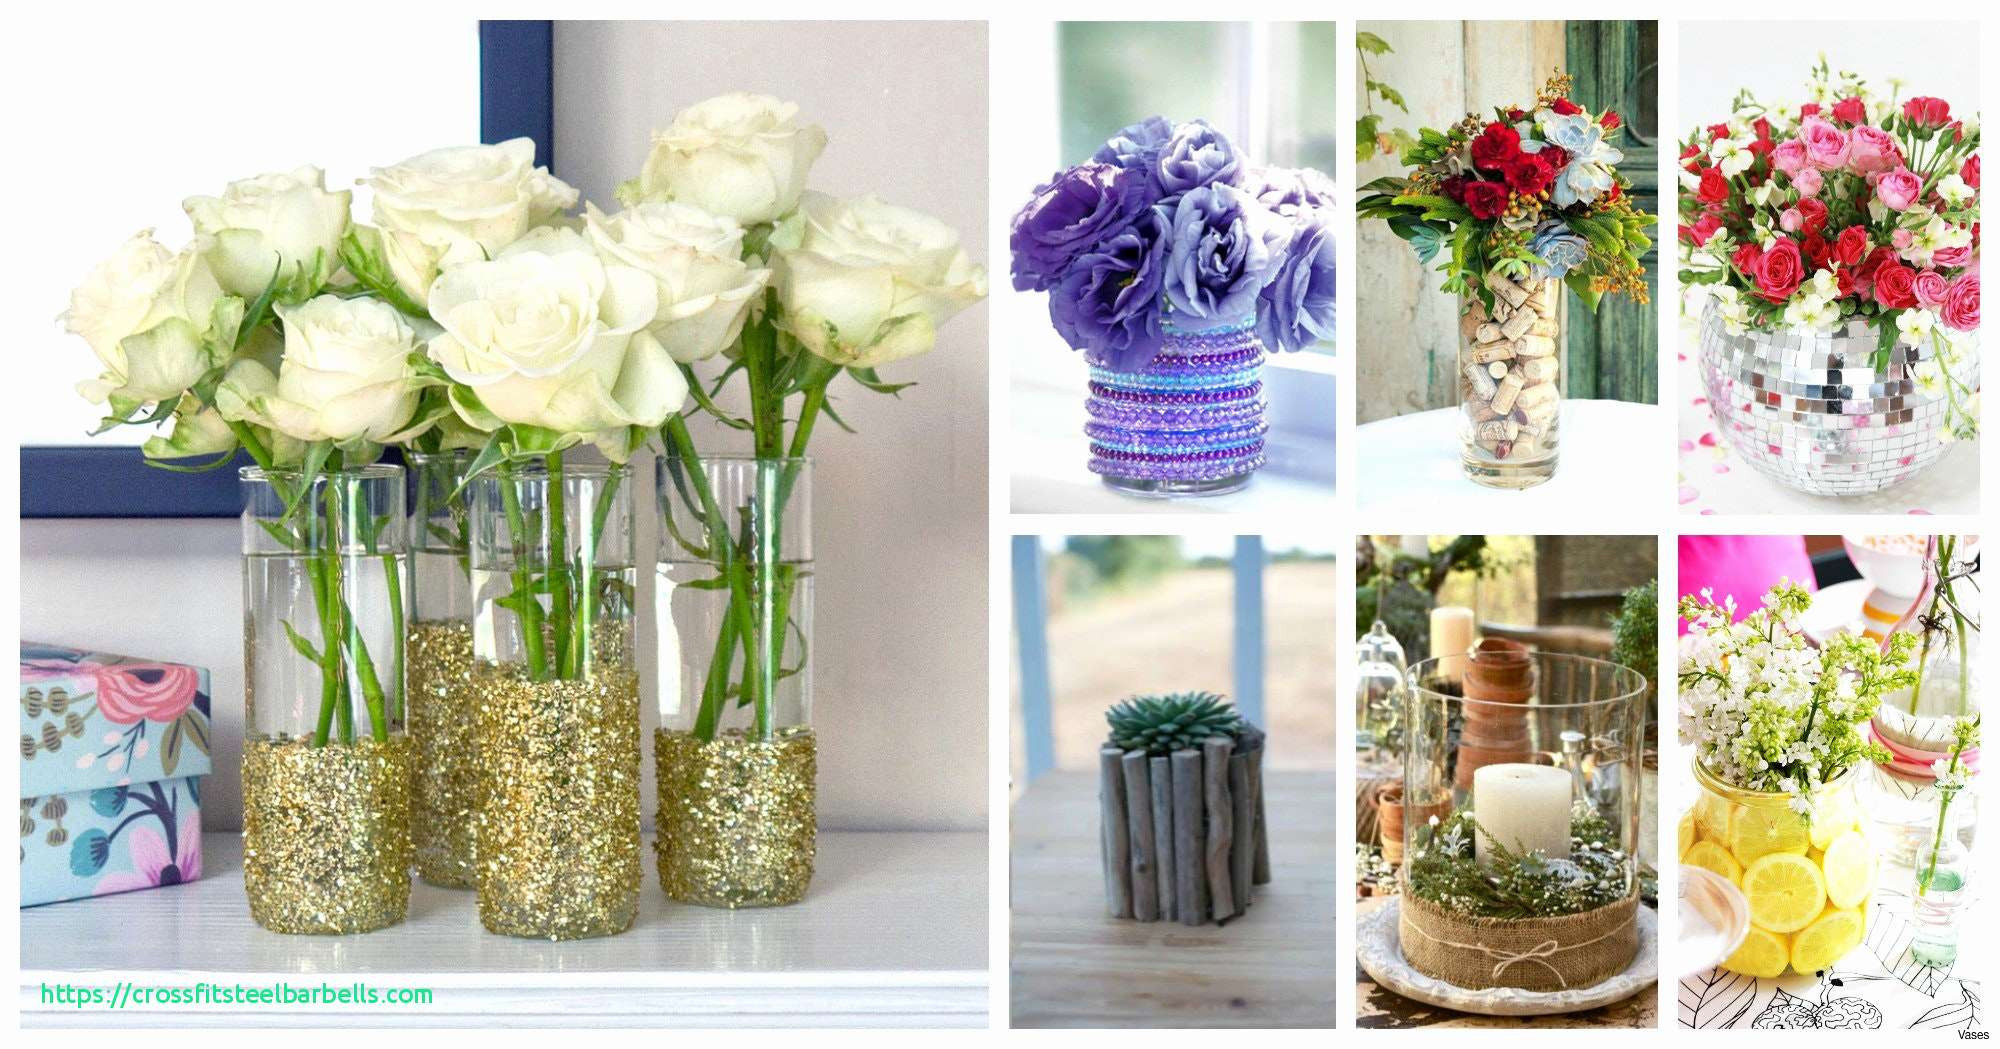 french vases for sale of french country vases stock french flower bucket h vases galvanized with french country vases photos interior decor flower vase best vase decoration beau vases flower of french